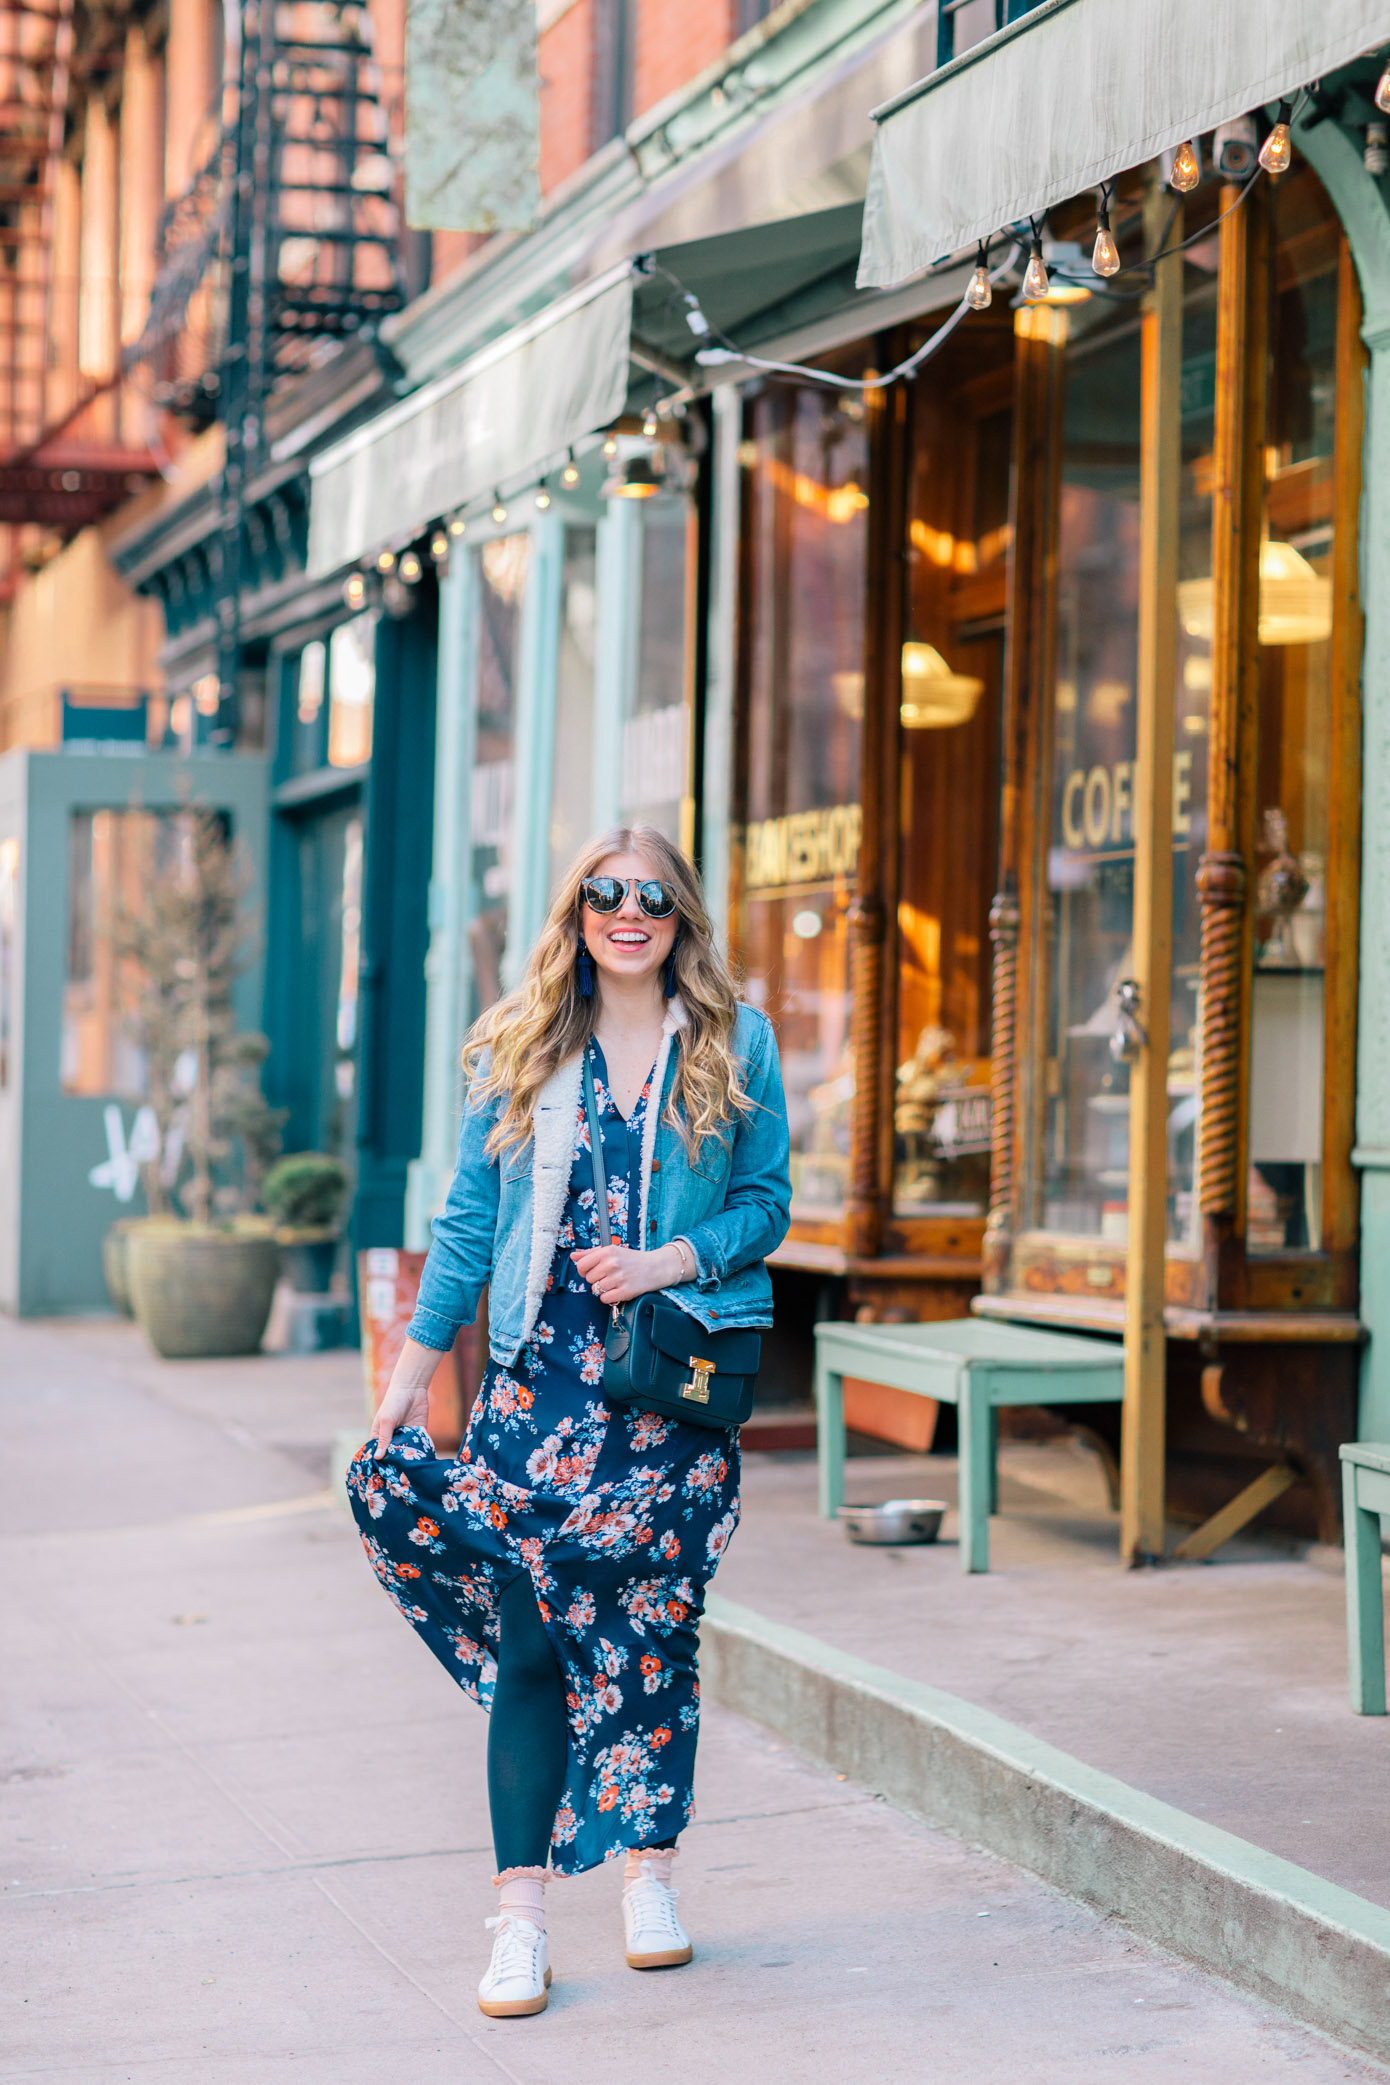 How to Wear Your Spring Dresses Now | Navy Floral Maxi Dress | Louella Reese Life & Style Blog